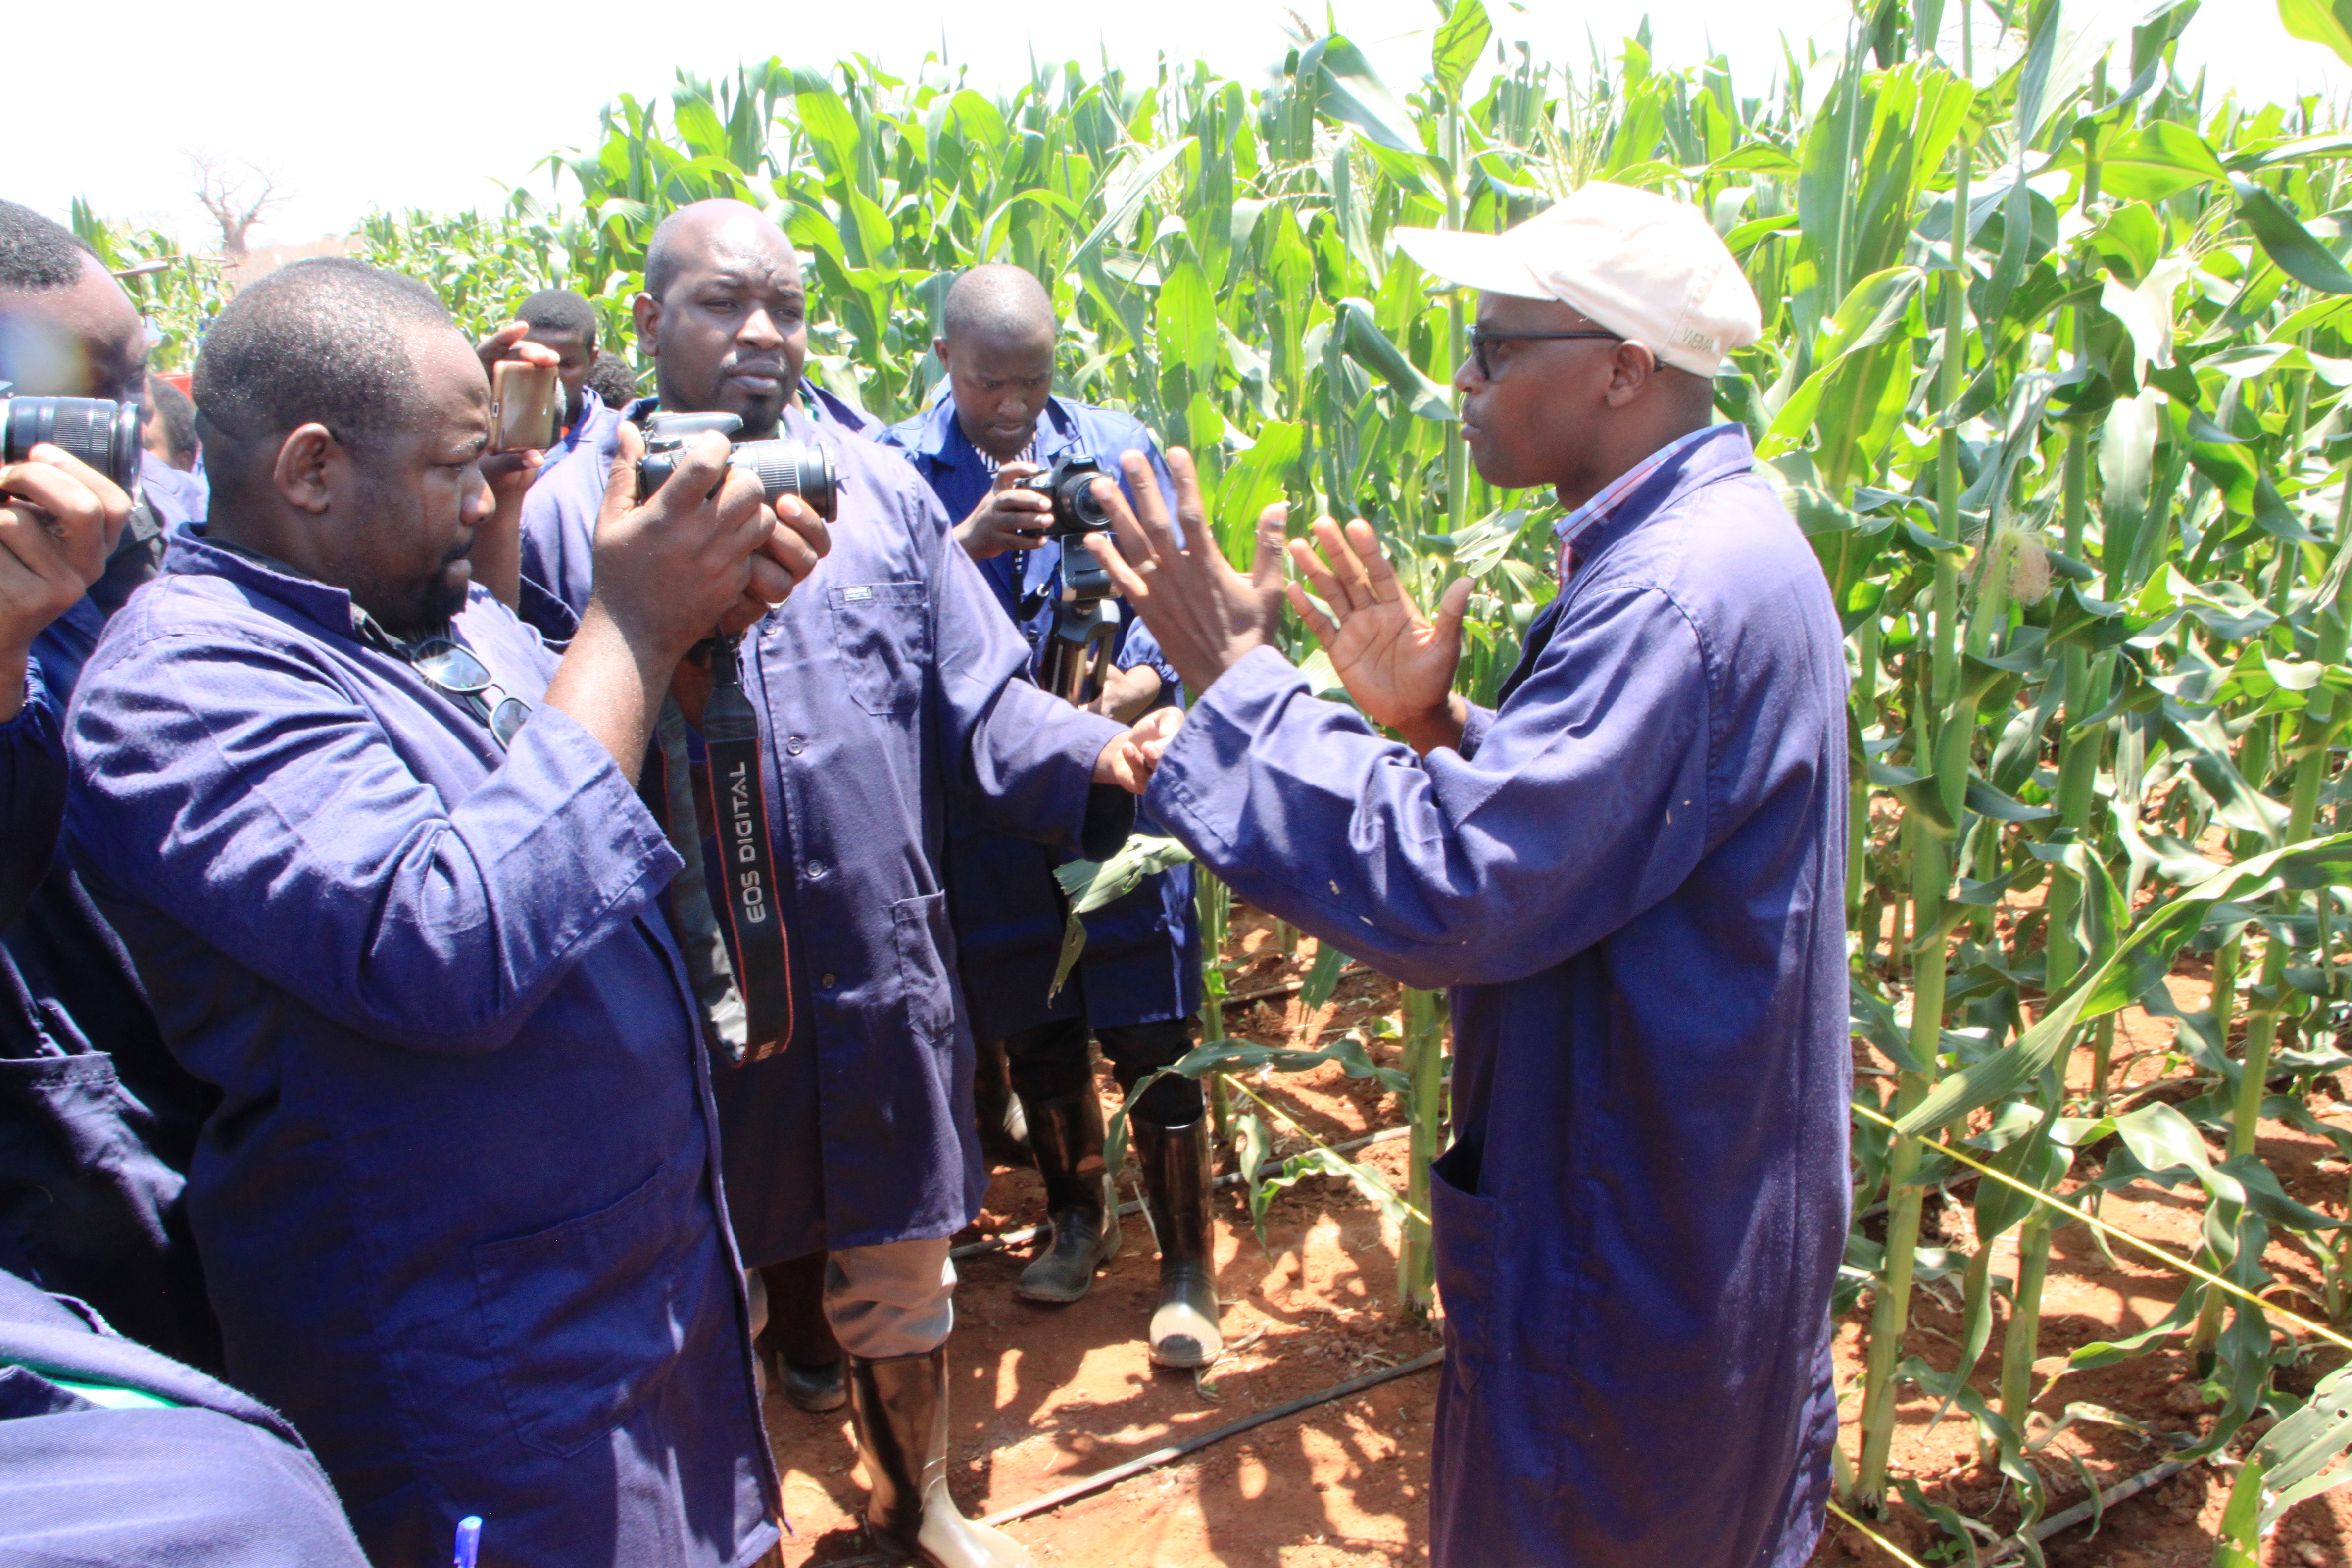 Opening doors to GM maize vital to improve yields, curb hunger